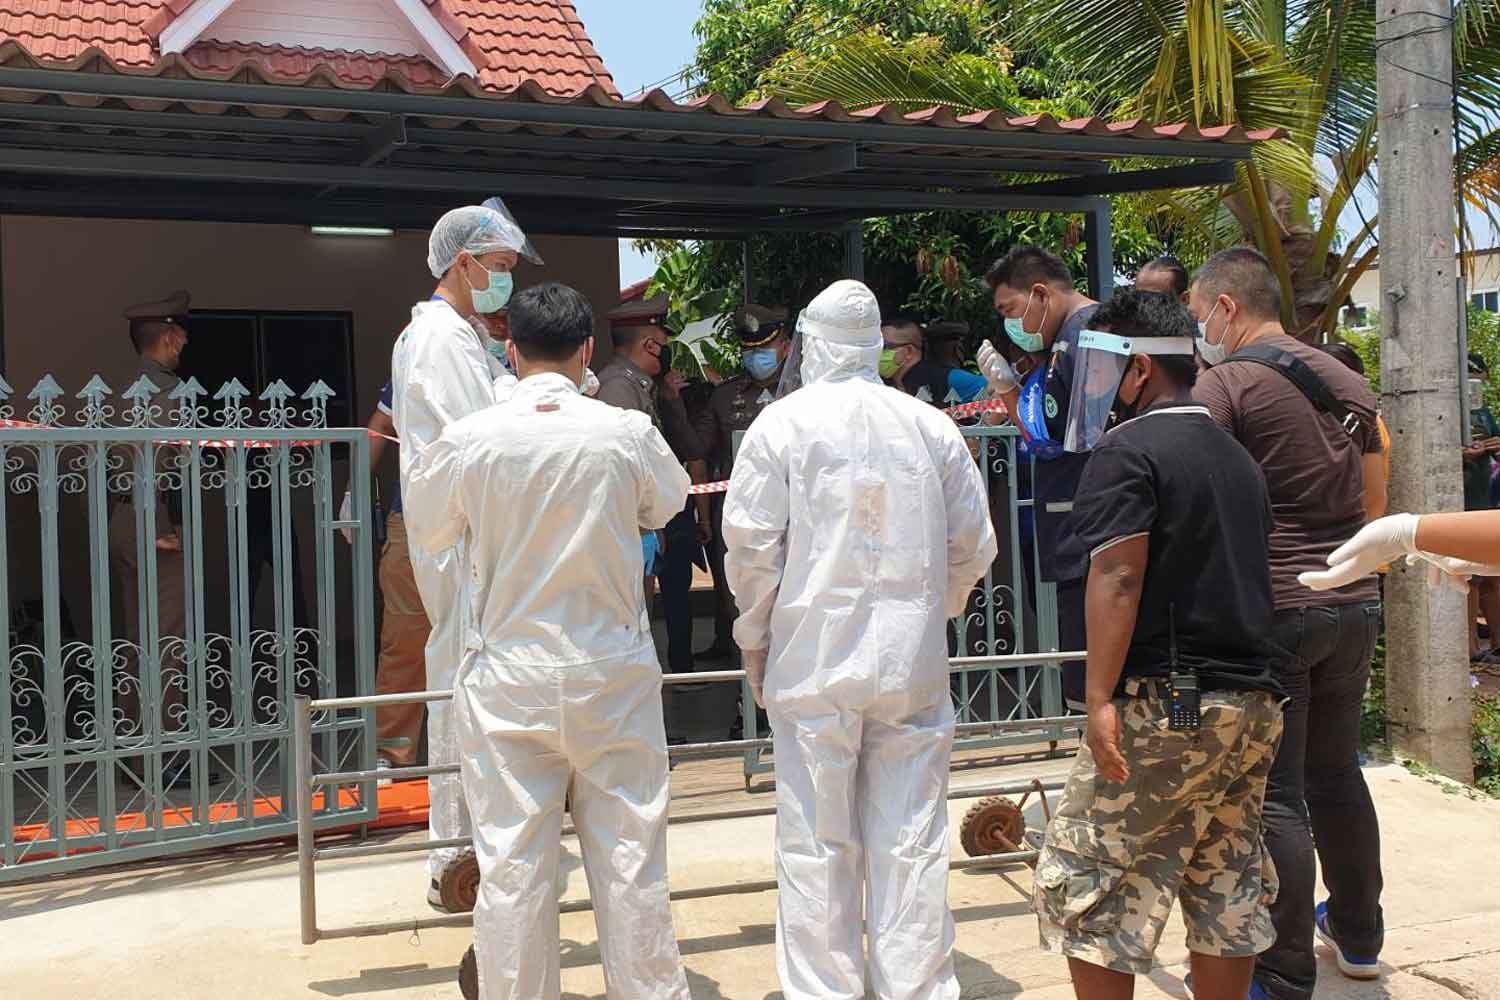 Forensic police examine a row house in Muang district of Prachin Buri where a German man was found dead with a stab wound to the chest on Wednesday morning. (Photo: Manit Sanubboon)